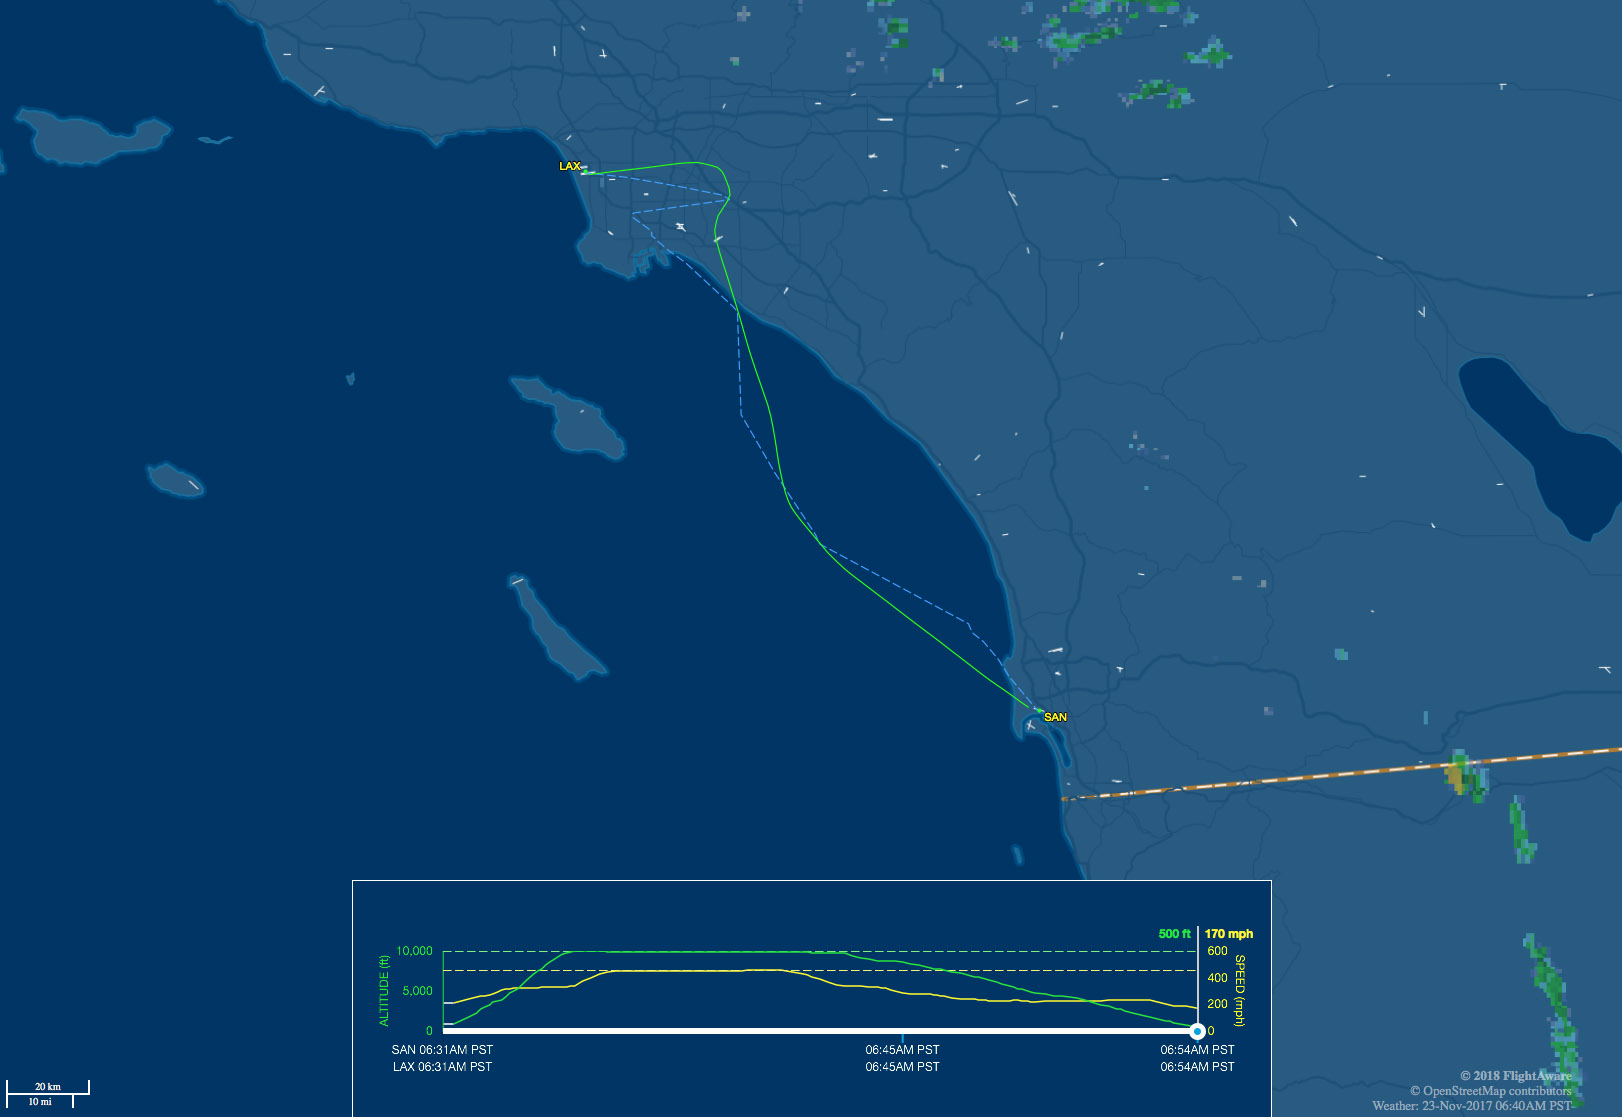 SAN to LAX route